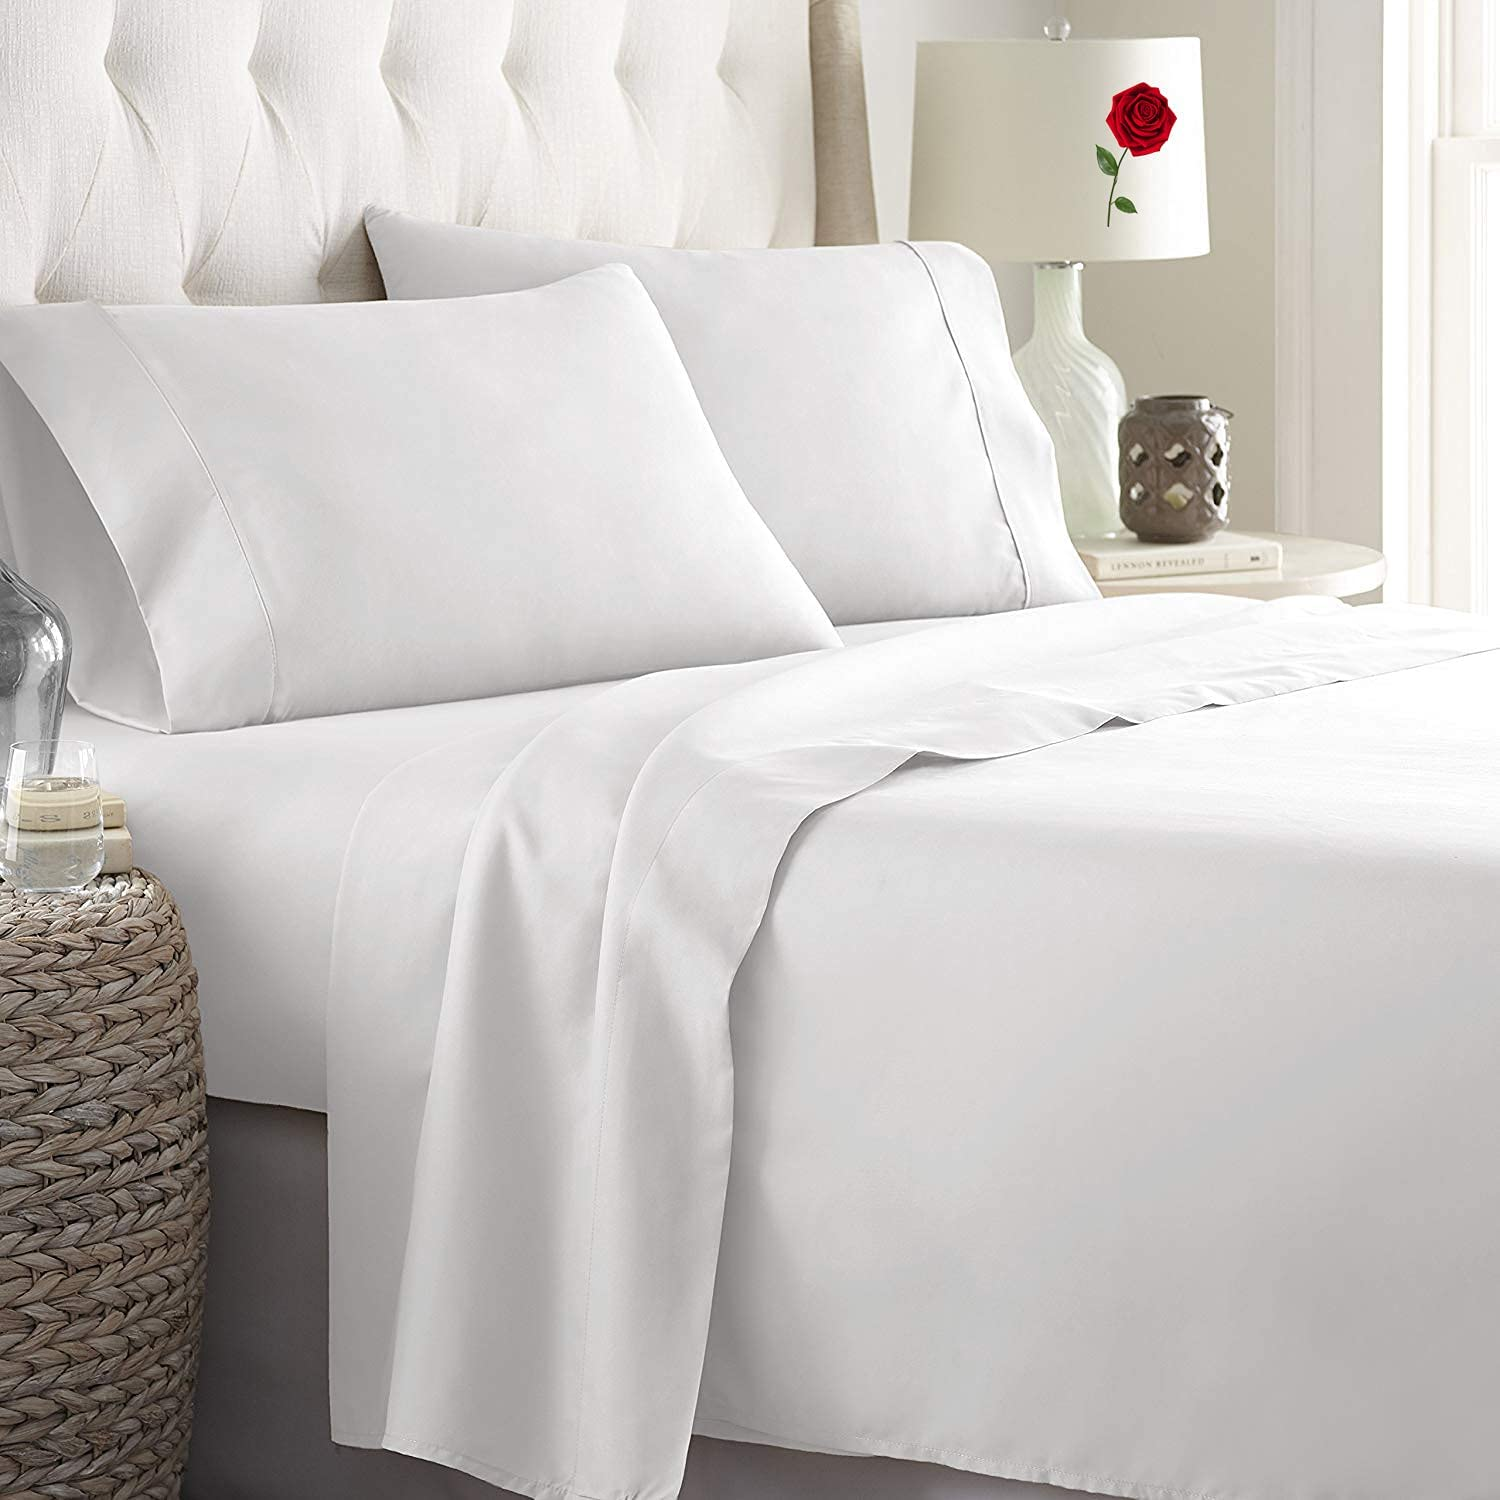 ForZzz 4Piece Cozy 100% OFFer Free shipping anywhere in the nation Pure Cotton Natural Queen Size White She